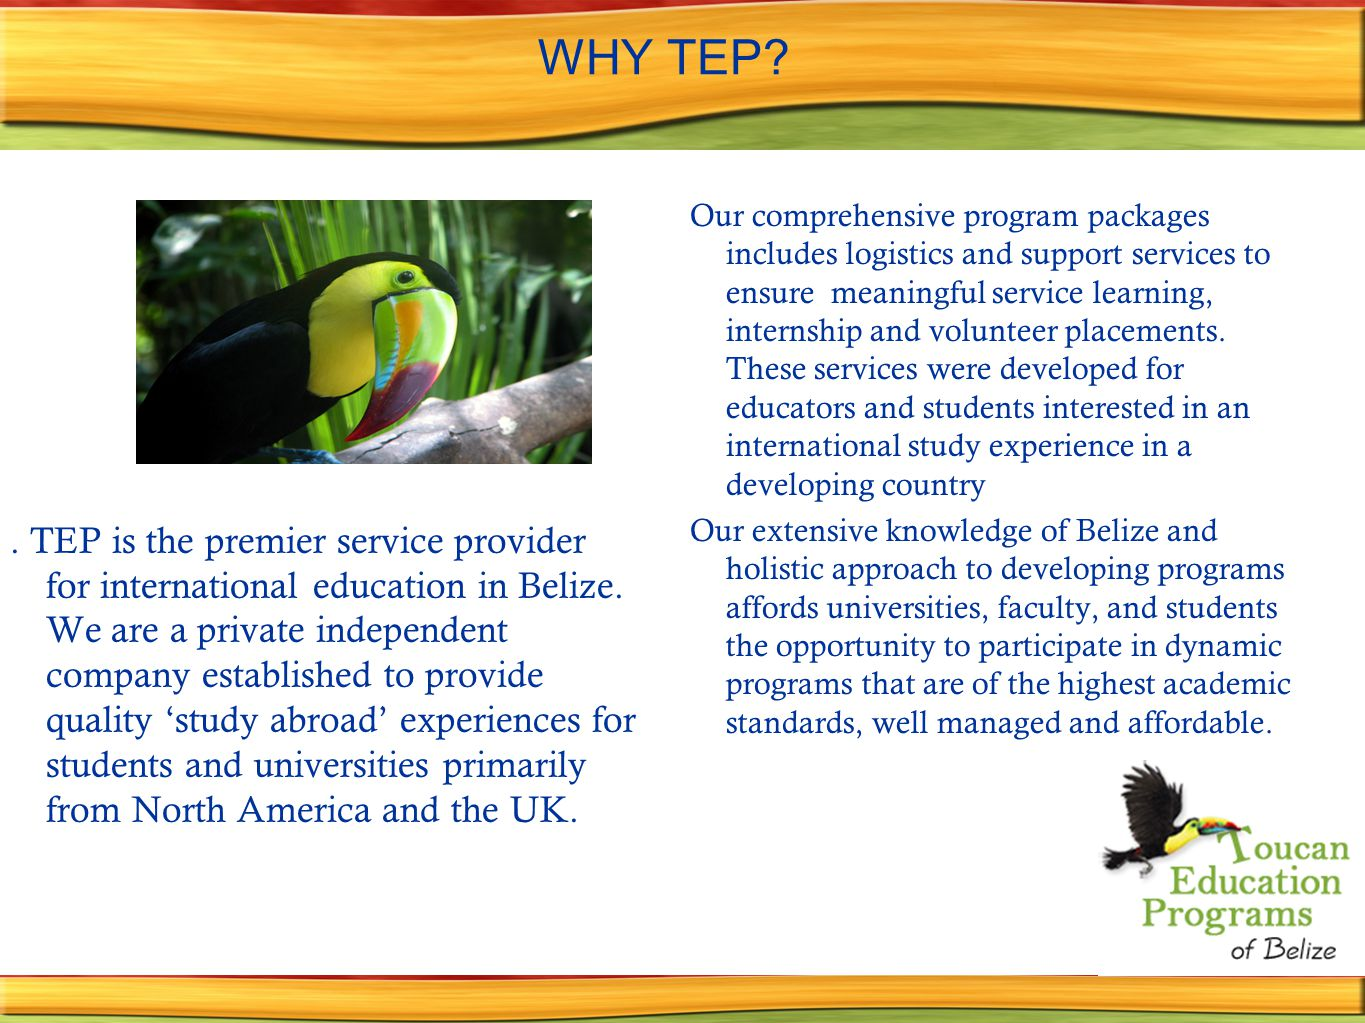 WHY TEP?. TEP is the premier service provider for international education in Belize.